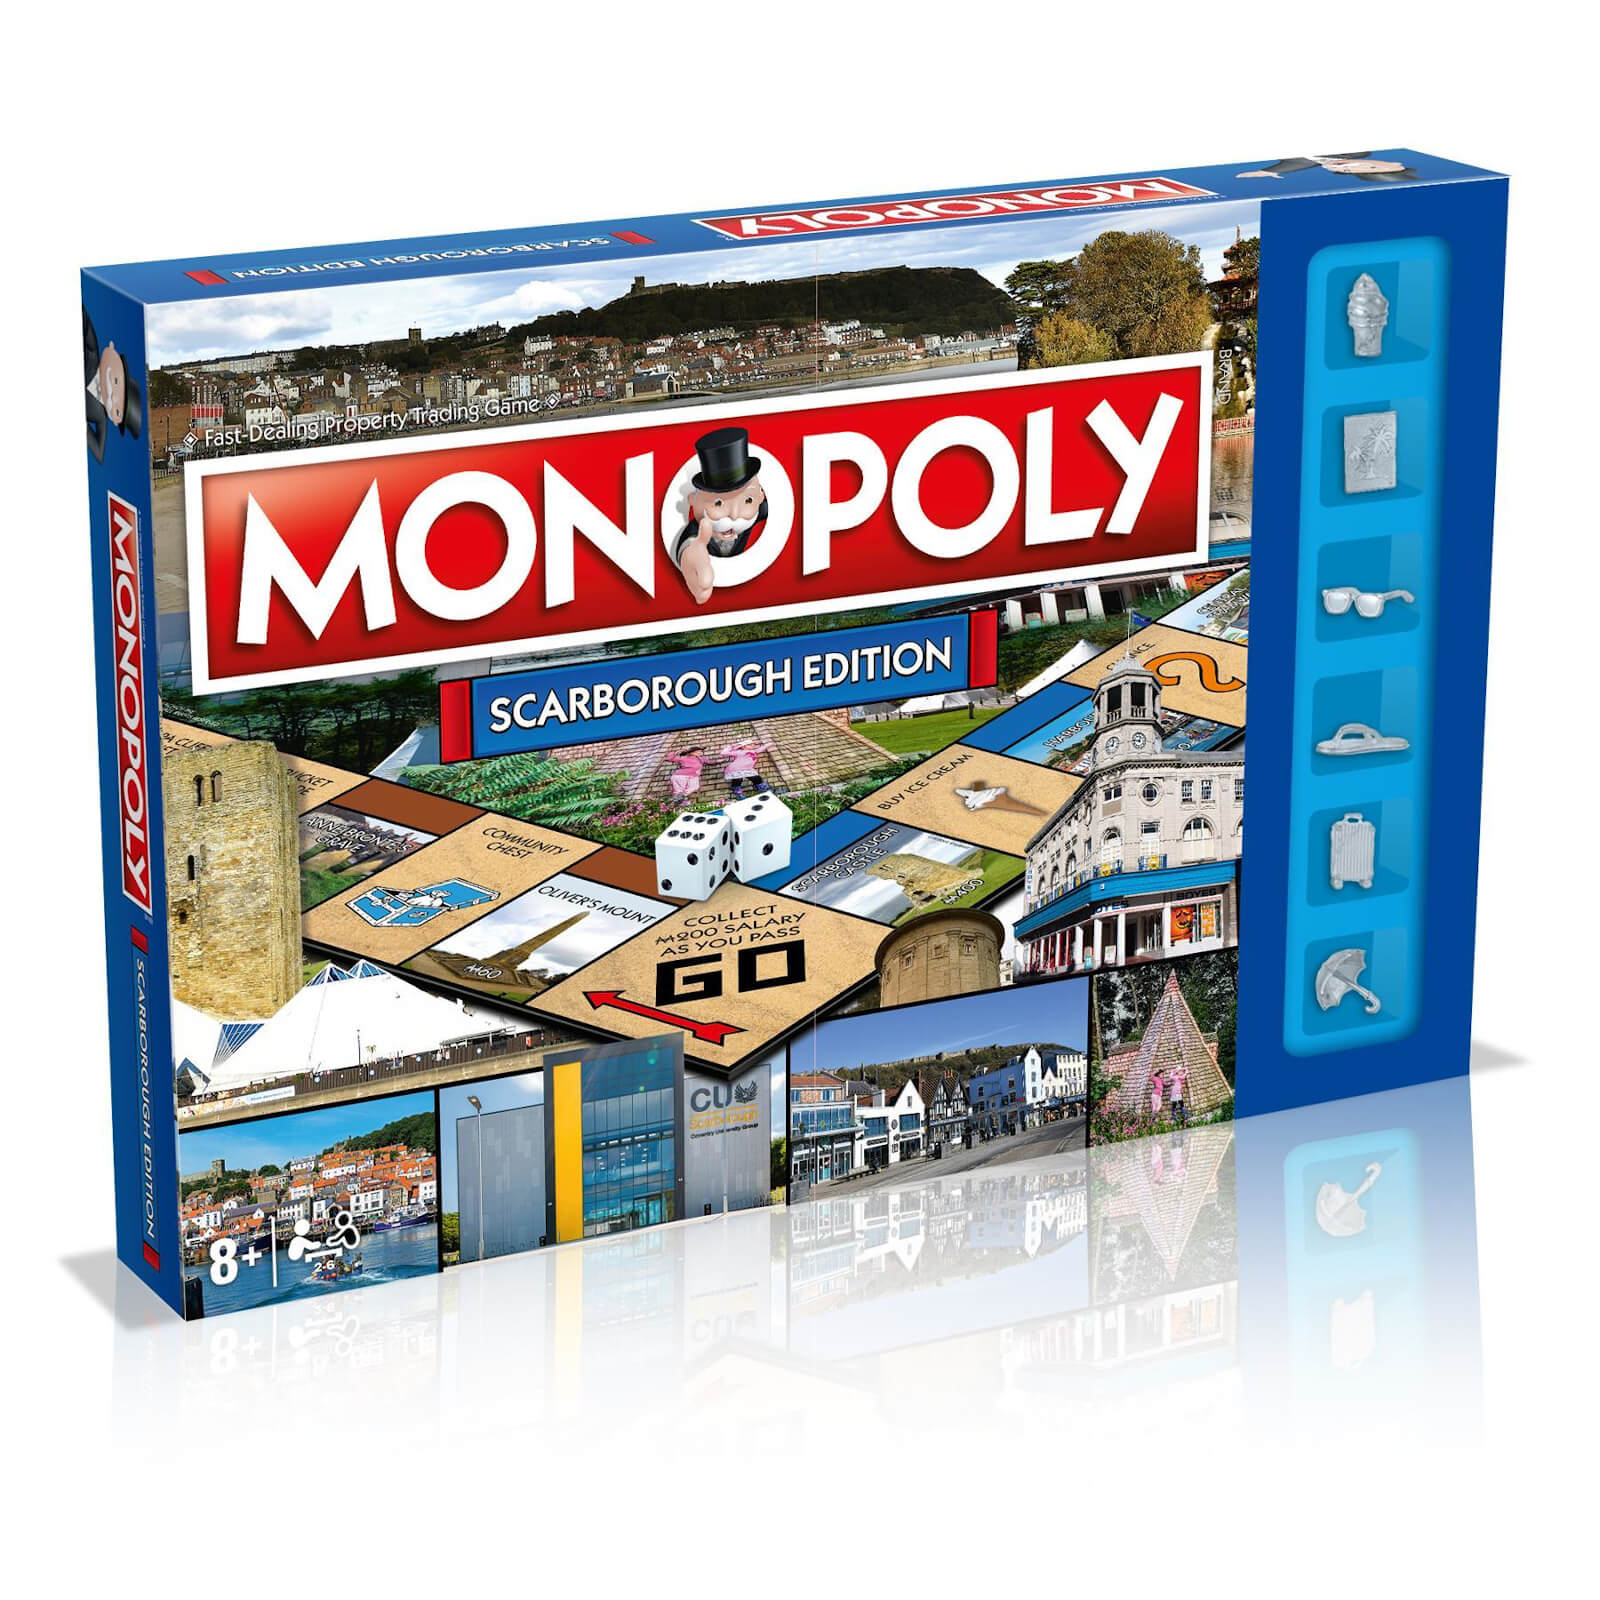 Image of Monopoly Board Game - Scarborough Edition